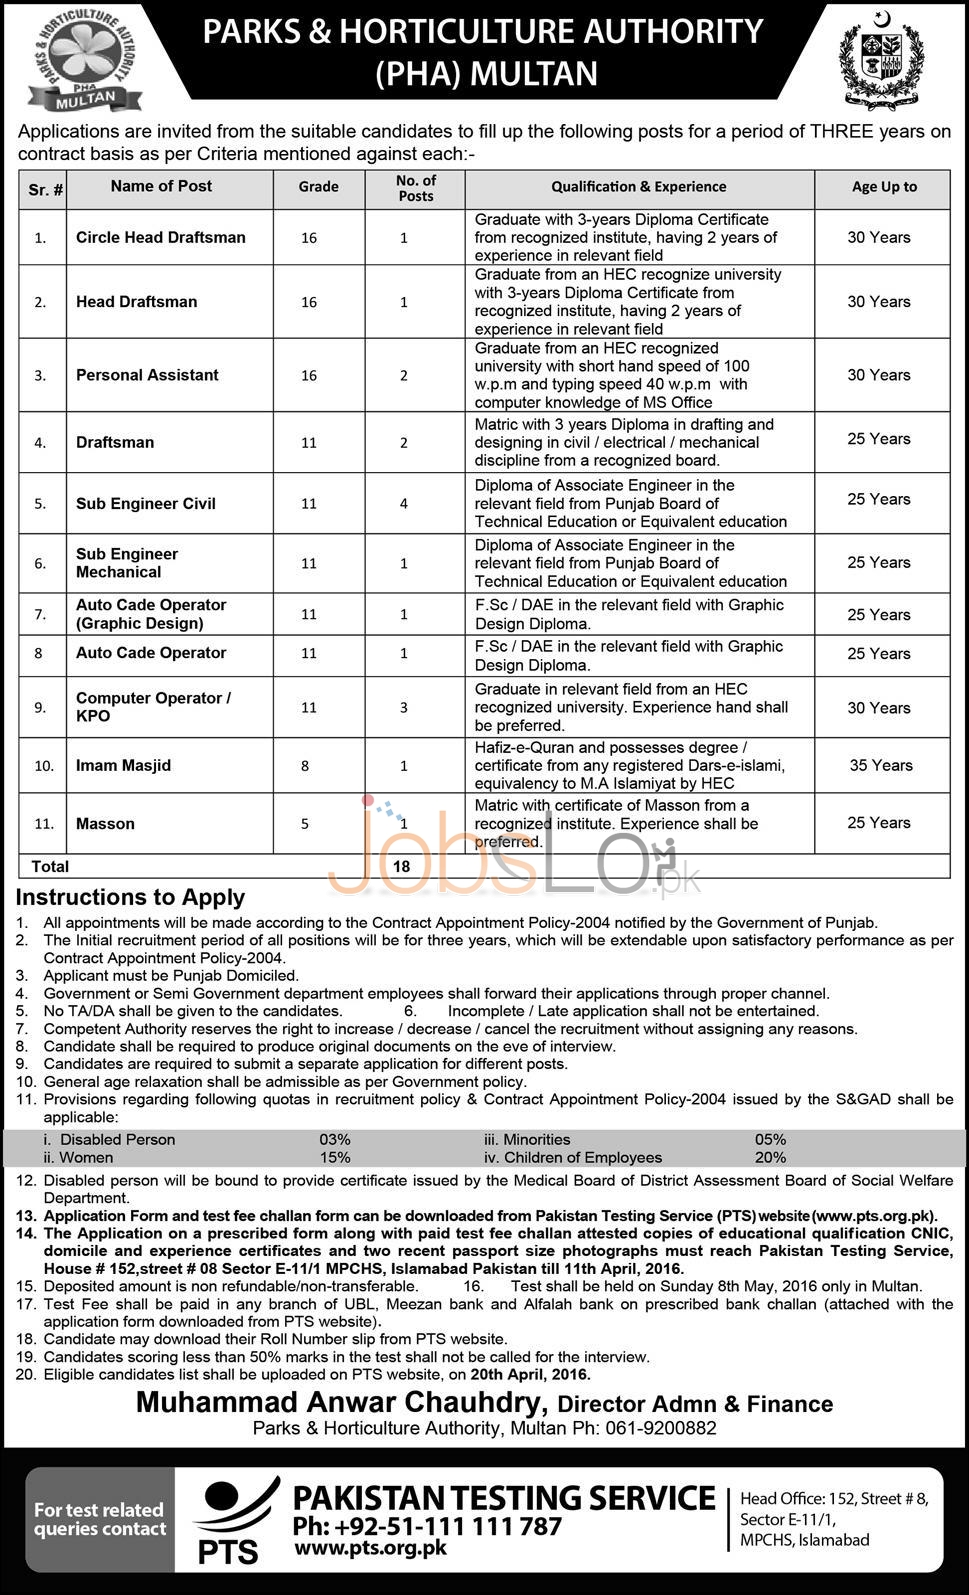 Pha multan jobs 27 march 2016 pts application form - Online design jobs work from home ...